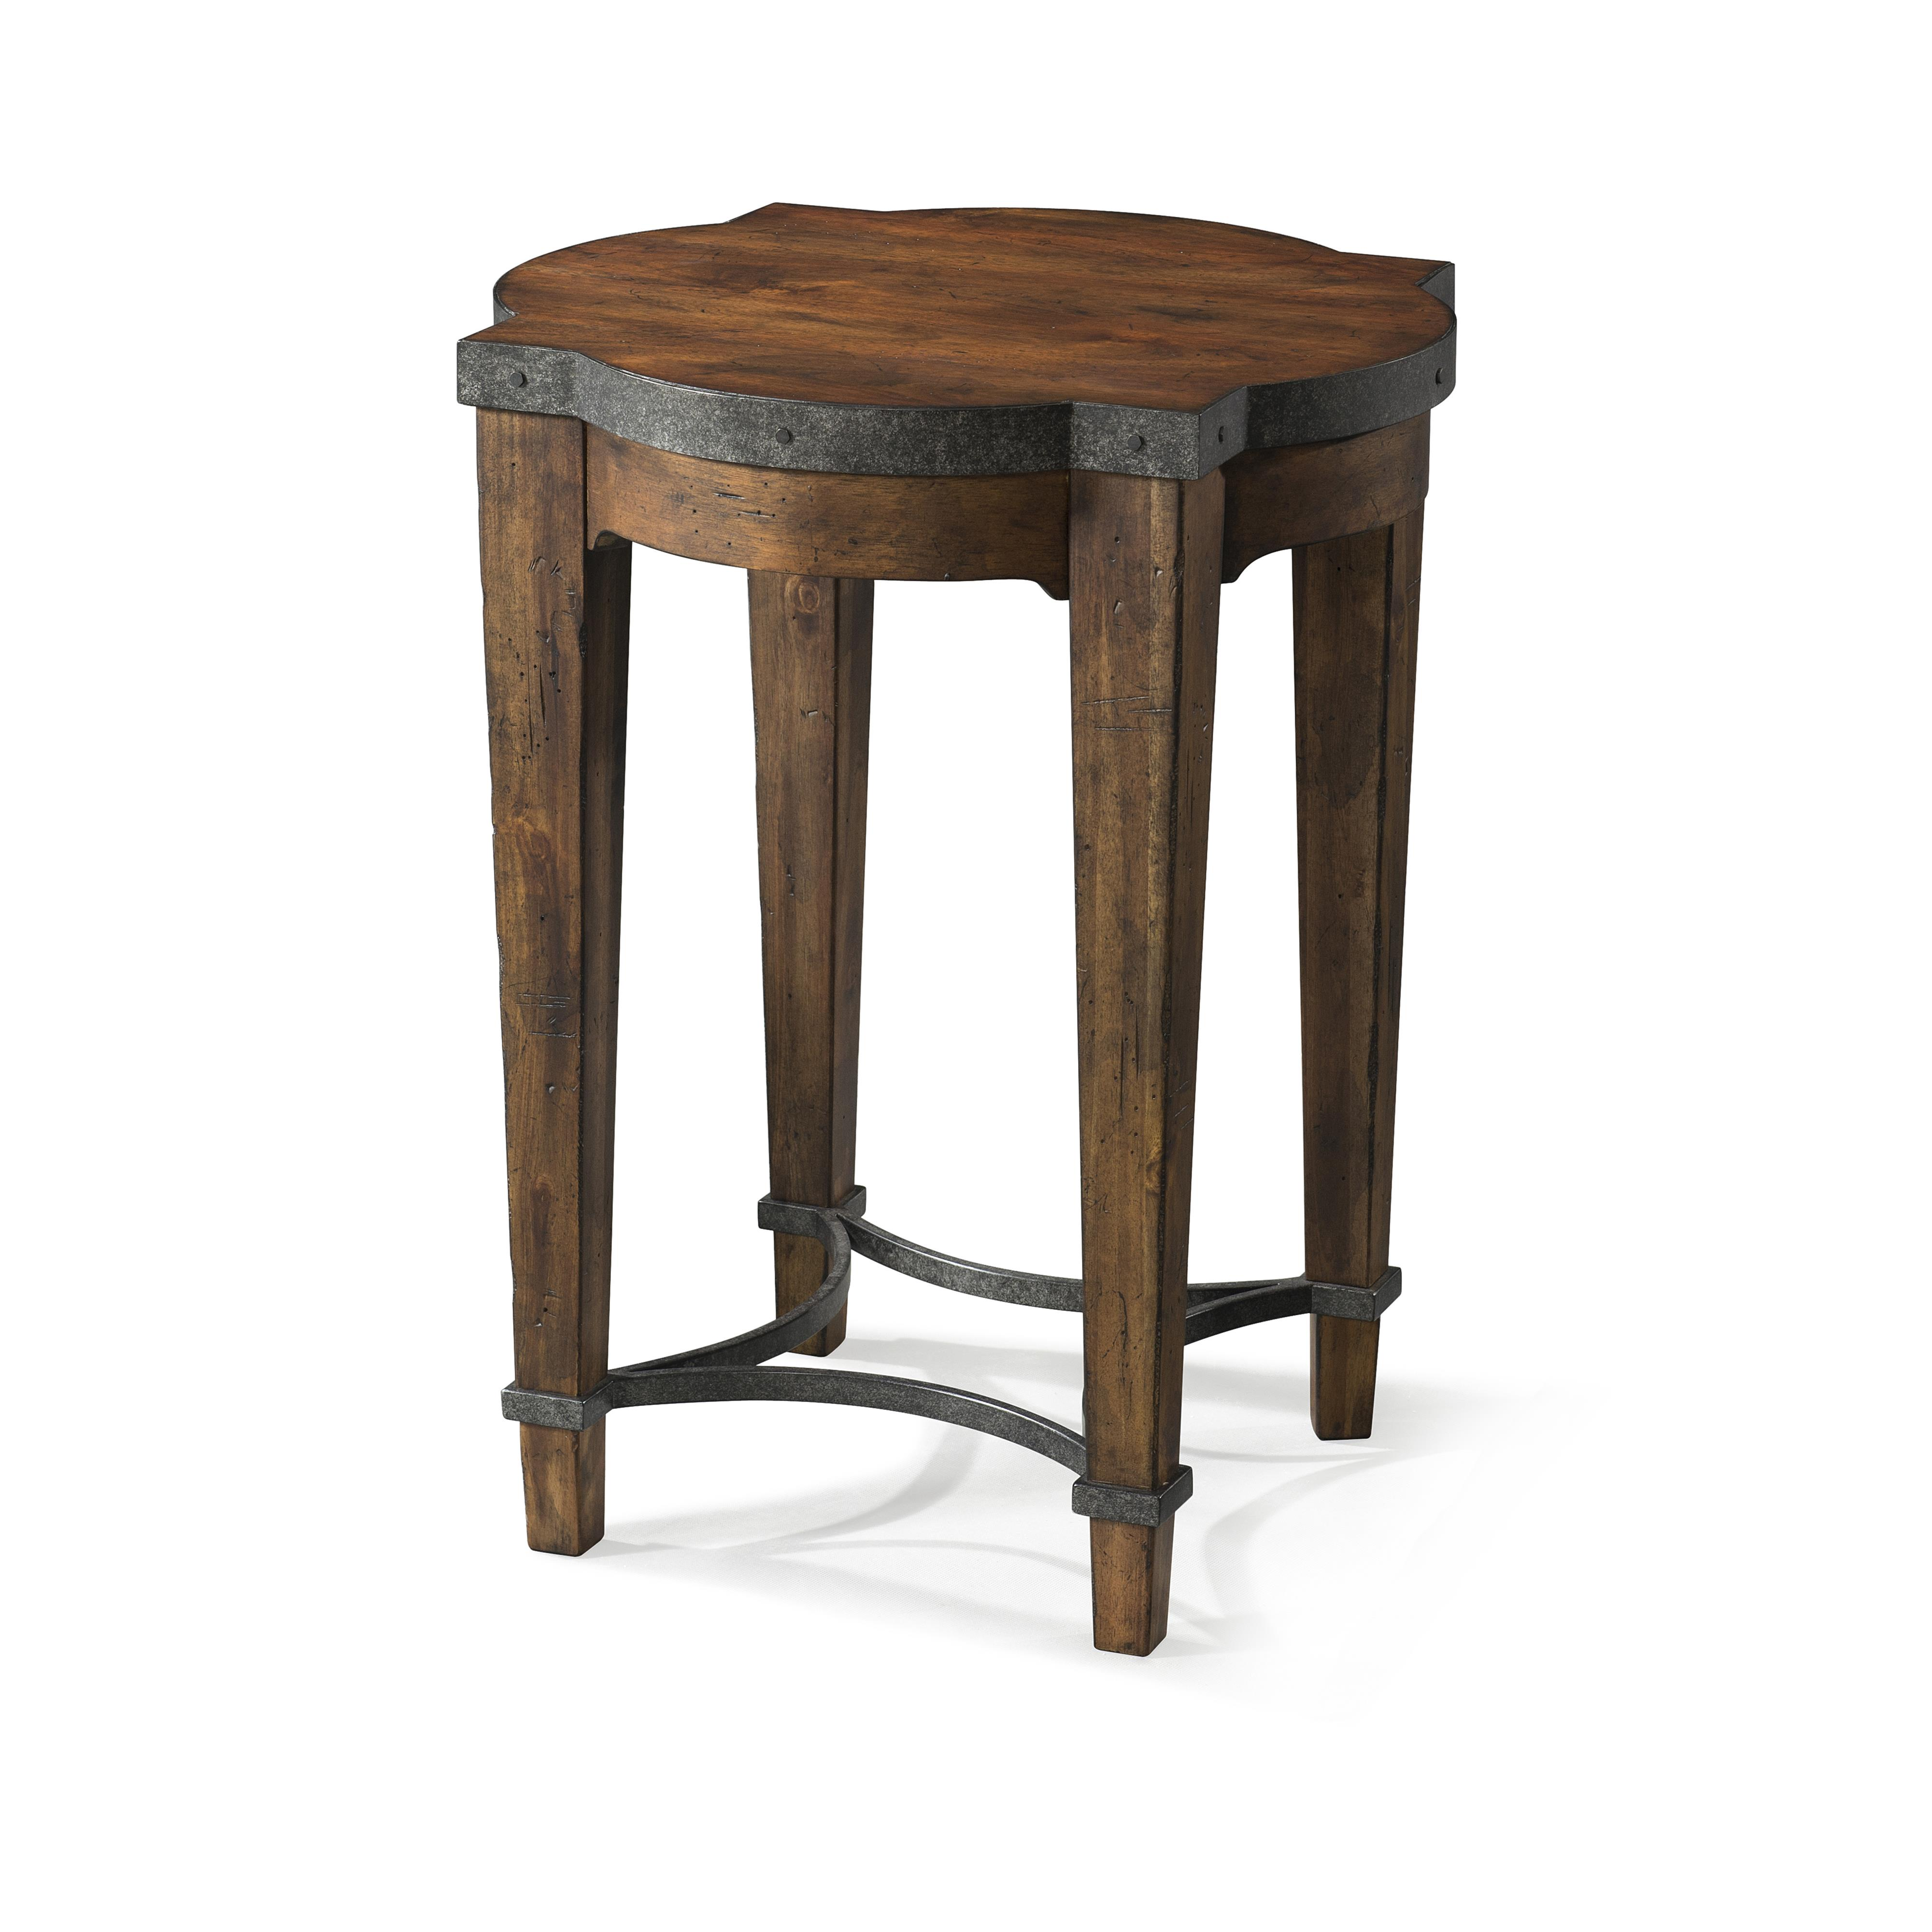 Trisha Yearwood Home Ginko Chairside Table by Trisha Yearwood Home Collection by Klaussner at Darvin Furniture